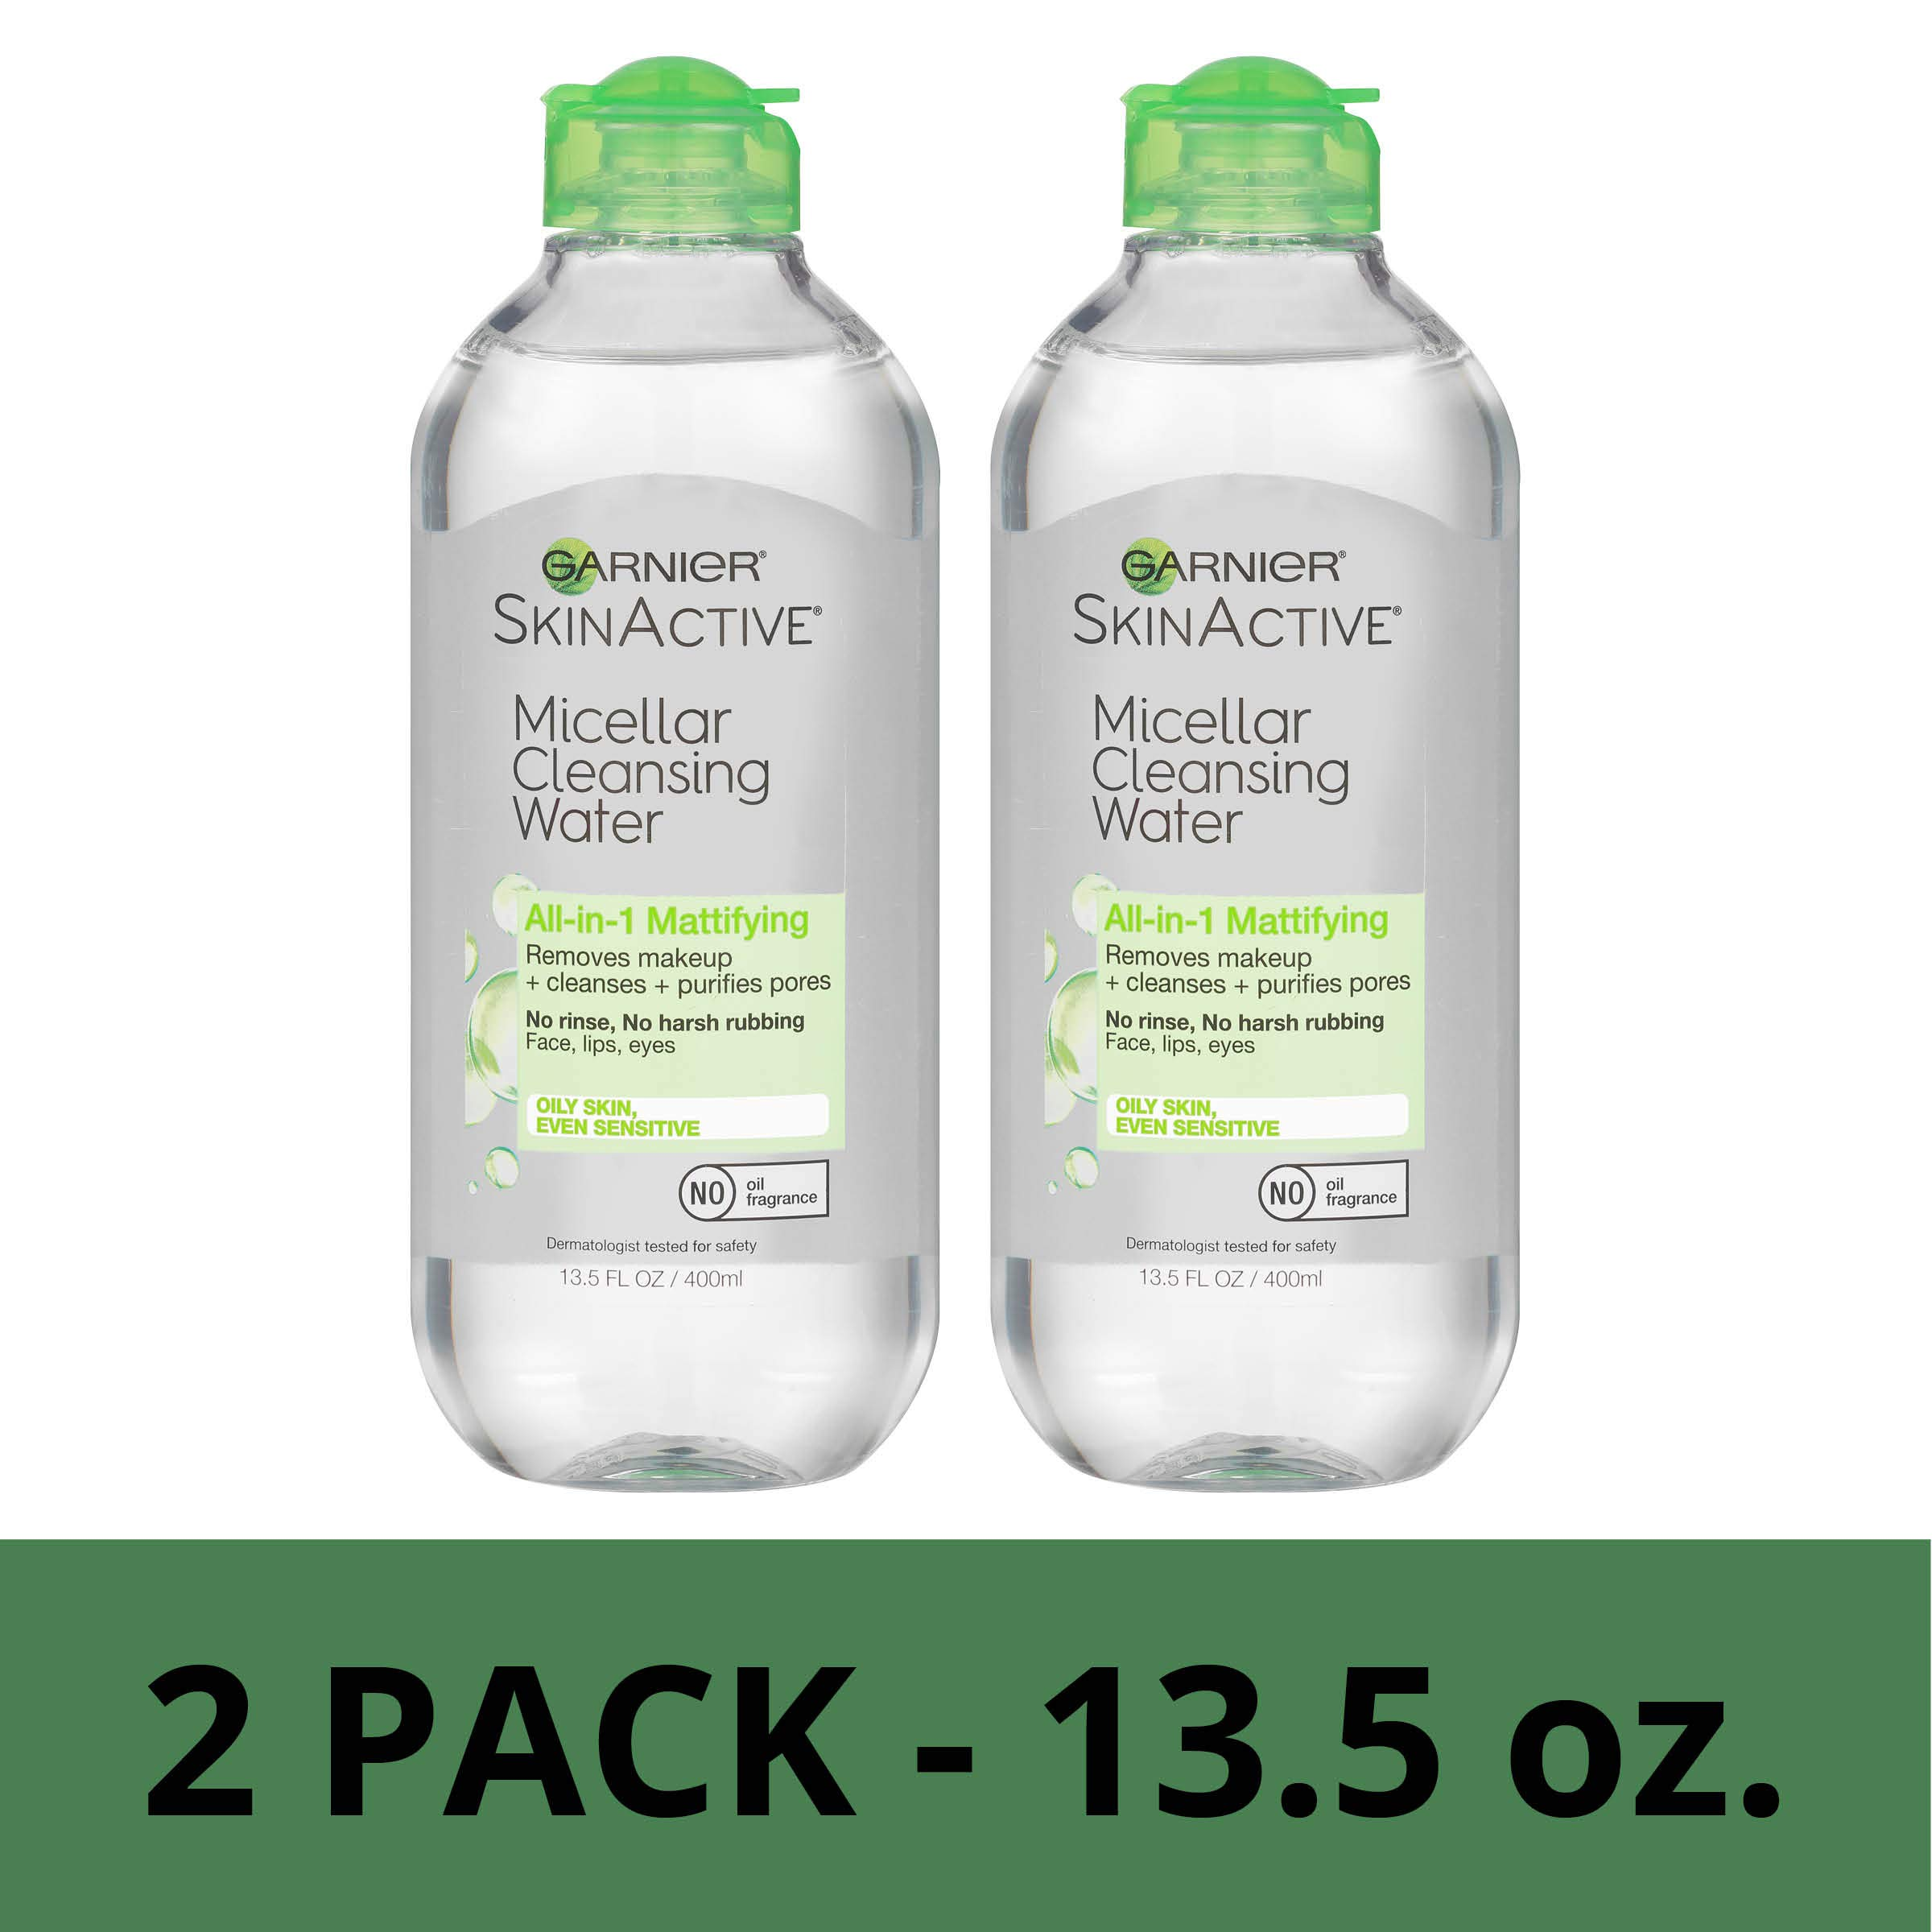 Garnier SkinActive Micellar Cleansing Water, All-in-1 Makeup Remover and Facial Cleanser, For Oily Skin, 13.5 fl oz, 2 Pack by Garnier